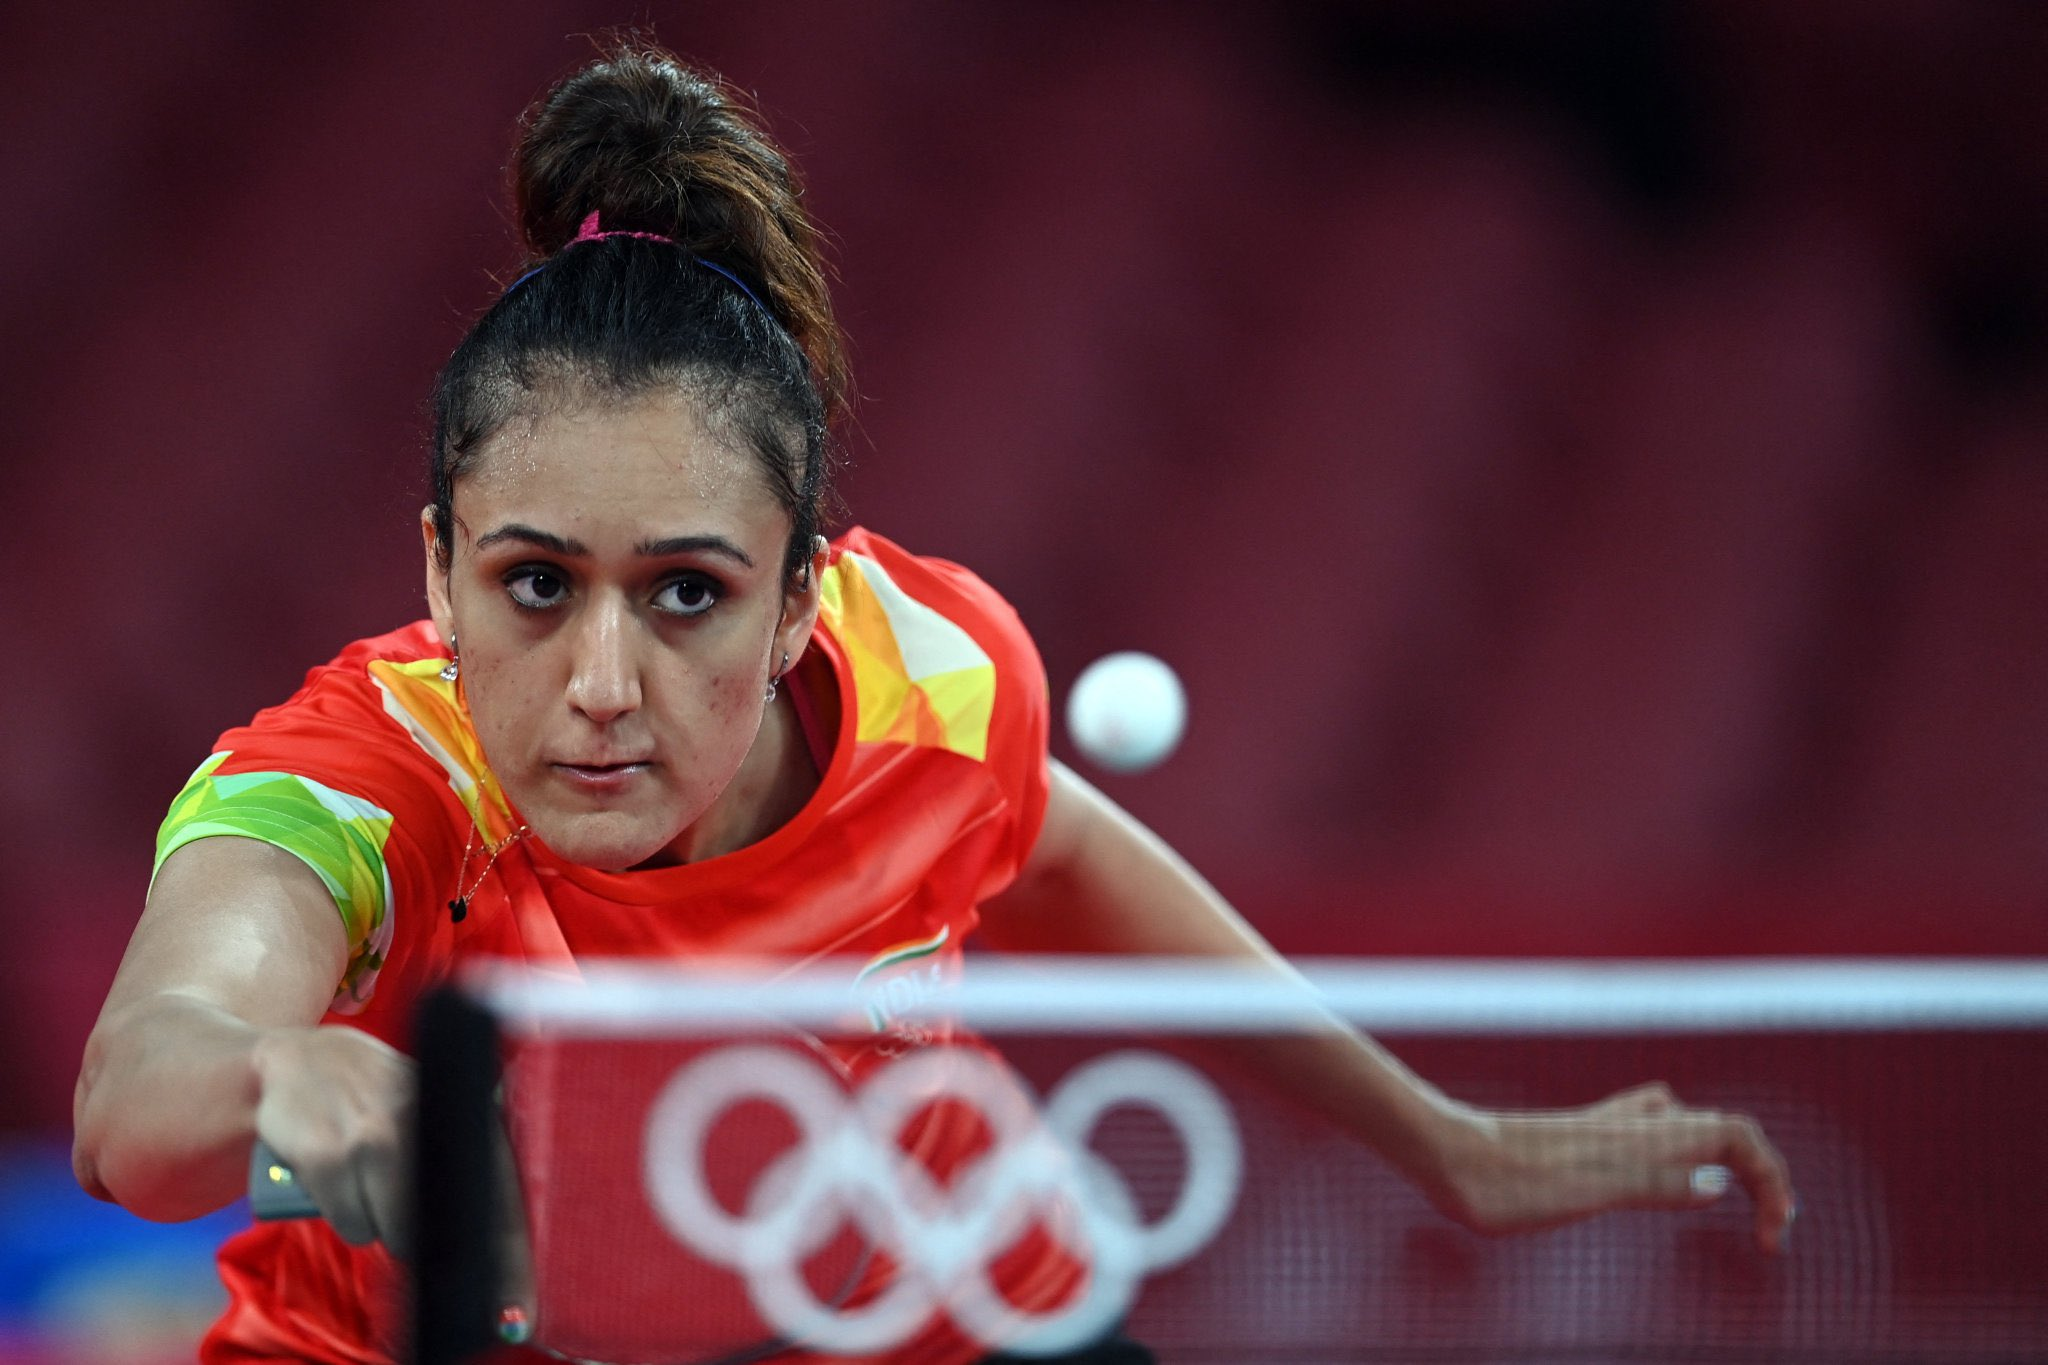 A super performance filled with grit and determination from our star paddler Manika Batra . Manika is just one more step away from medal.   Scoreline: 🇮🇳4 - 3 Courtesy- Manika Batra/Twitter